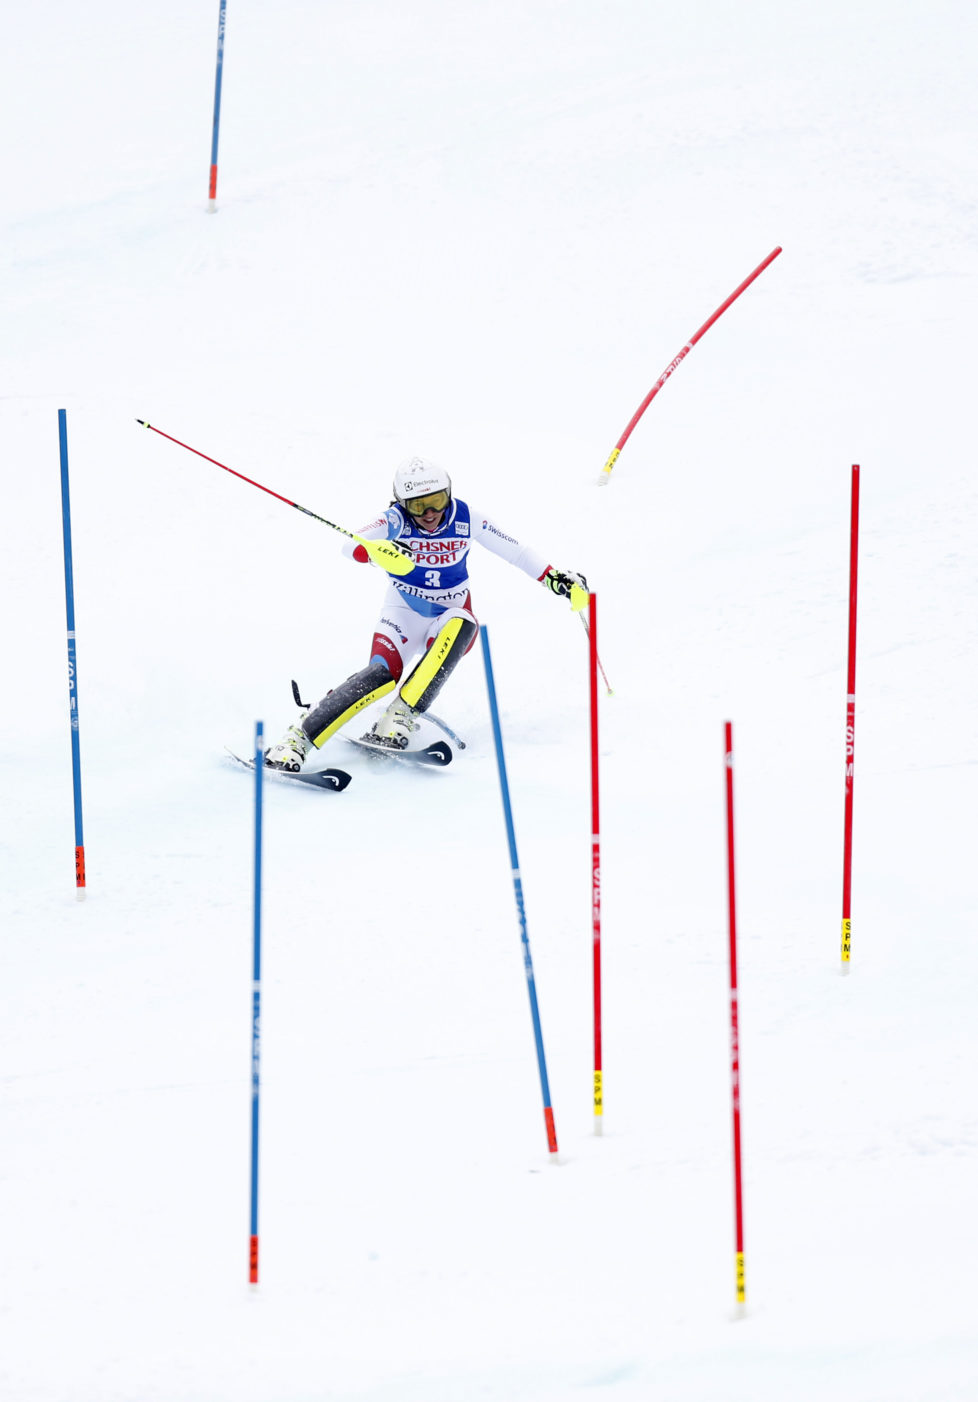 KILLINGTON, VT - NOVEMBER 27: Wendy Holdener of Switzerland in action during the Audi FIS Alpine Ski World Cup Women's Slalom on November 27, 2016 in Killington, Vermont. (Photo by Alexis Boichard/Agence Zoom/Getty Images)